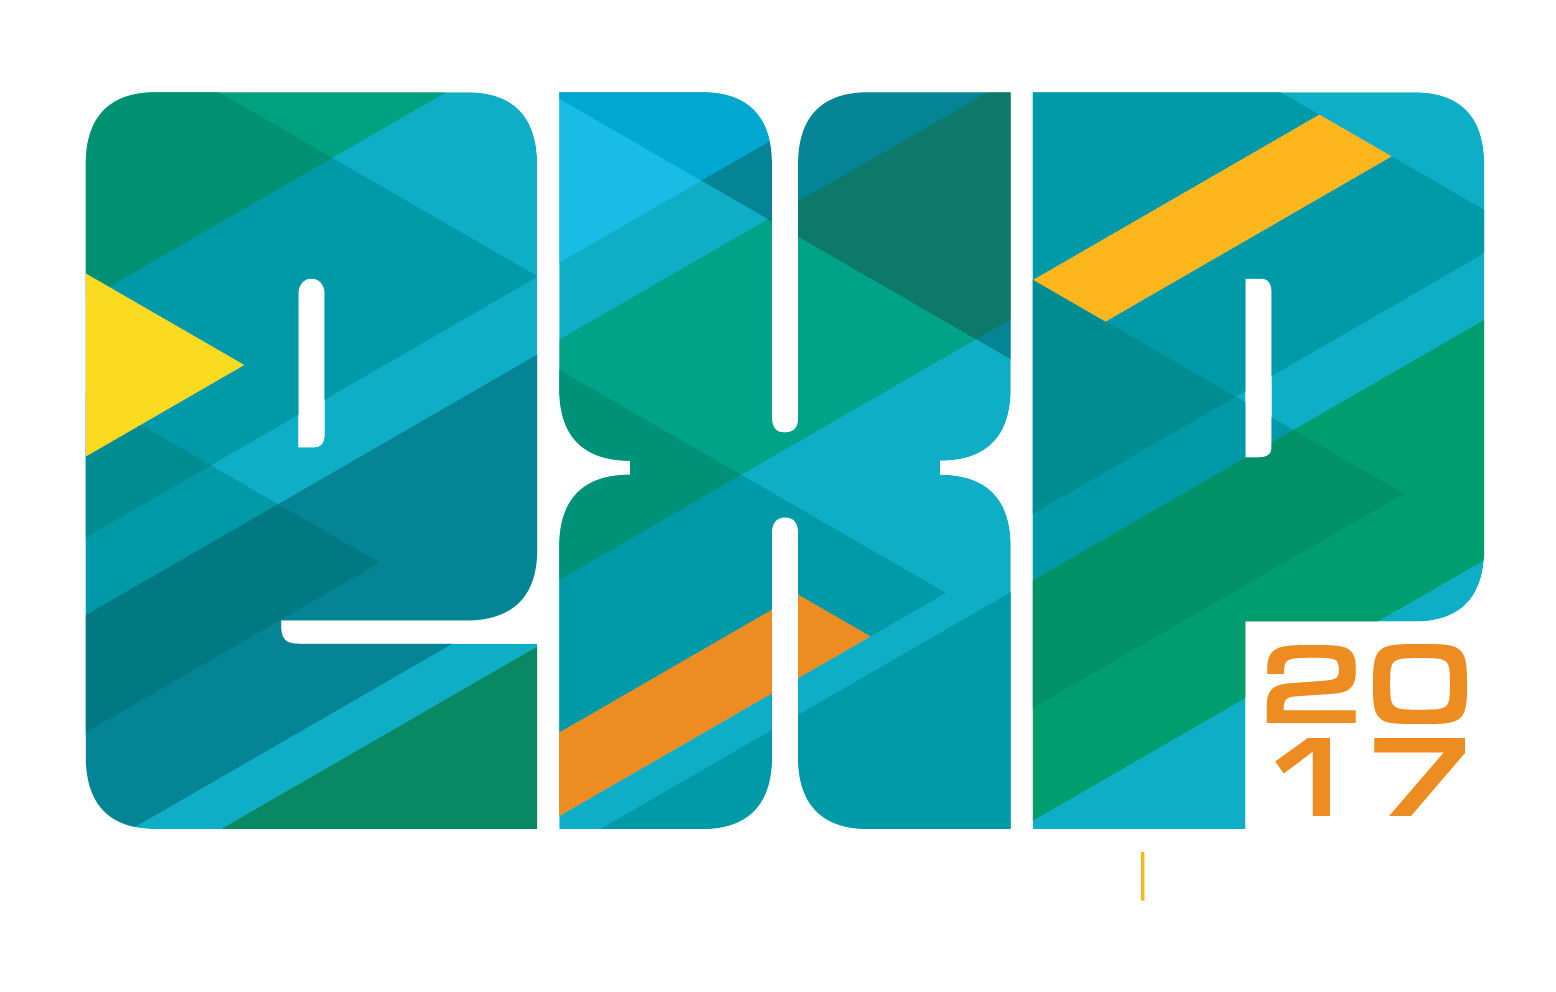 Experience Global Gathering